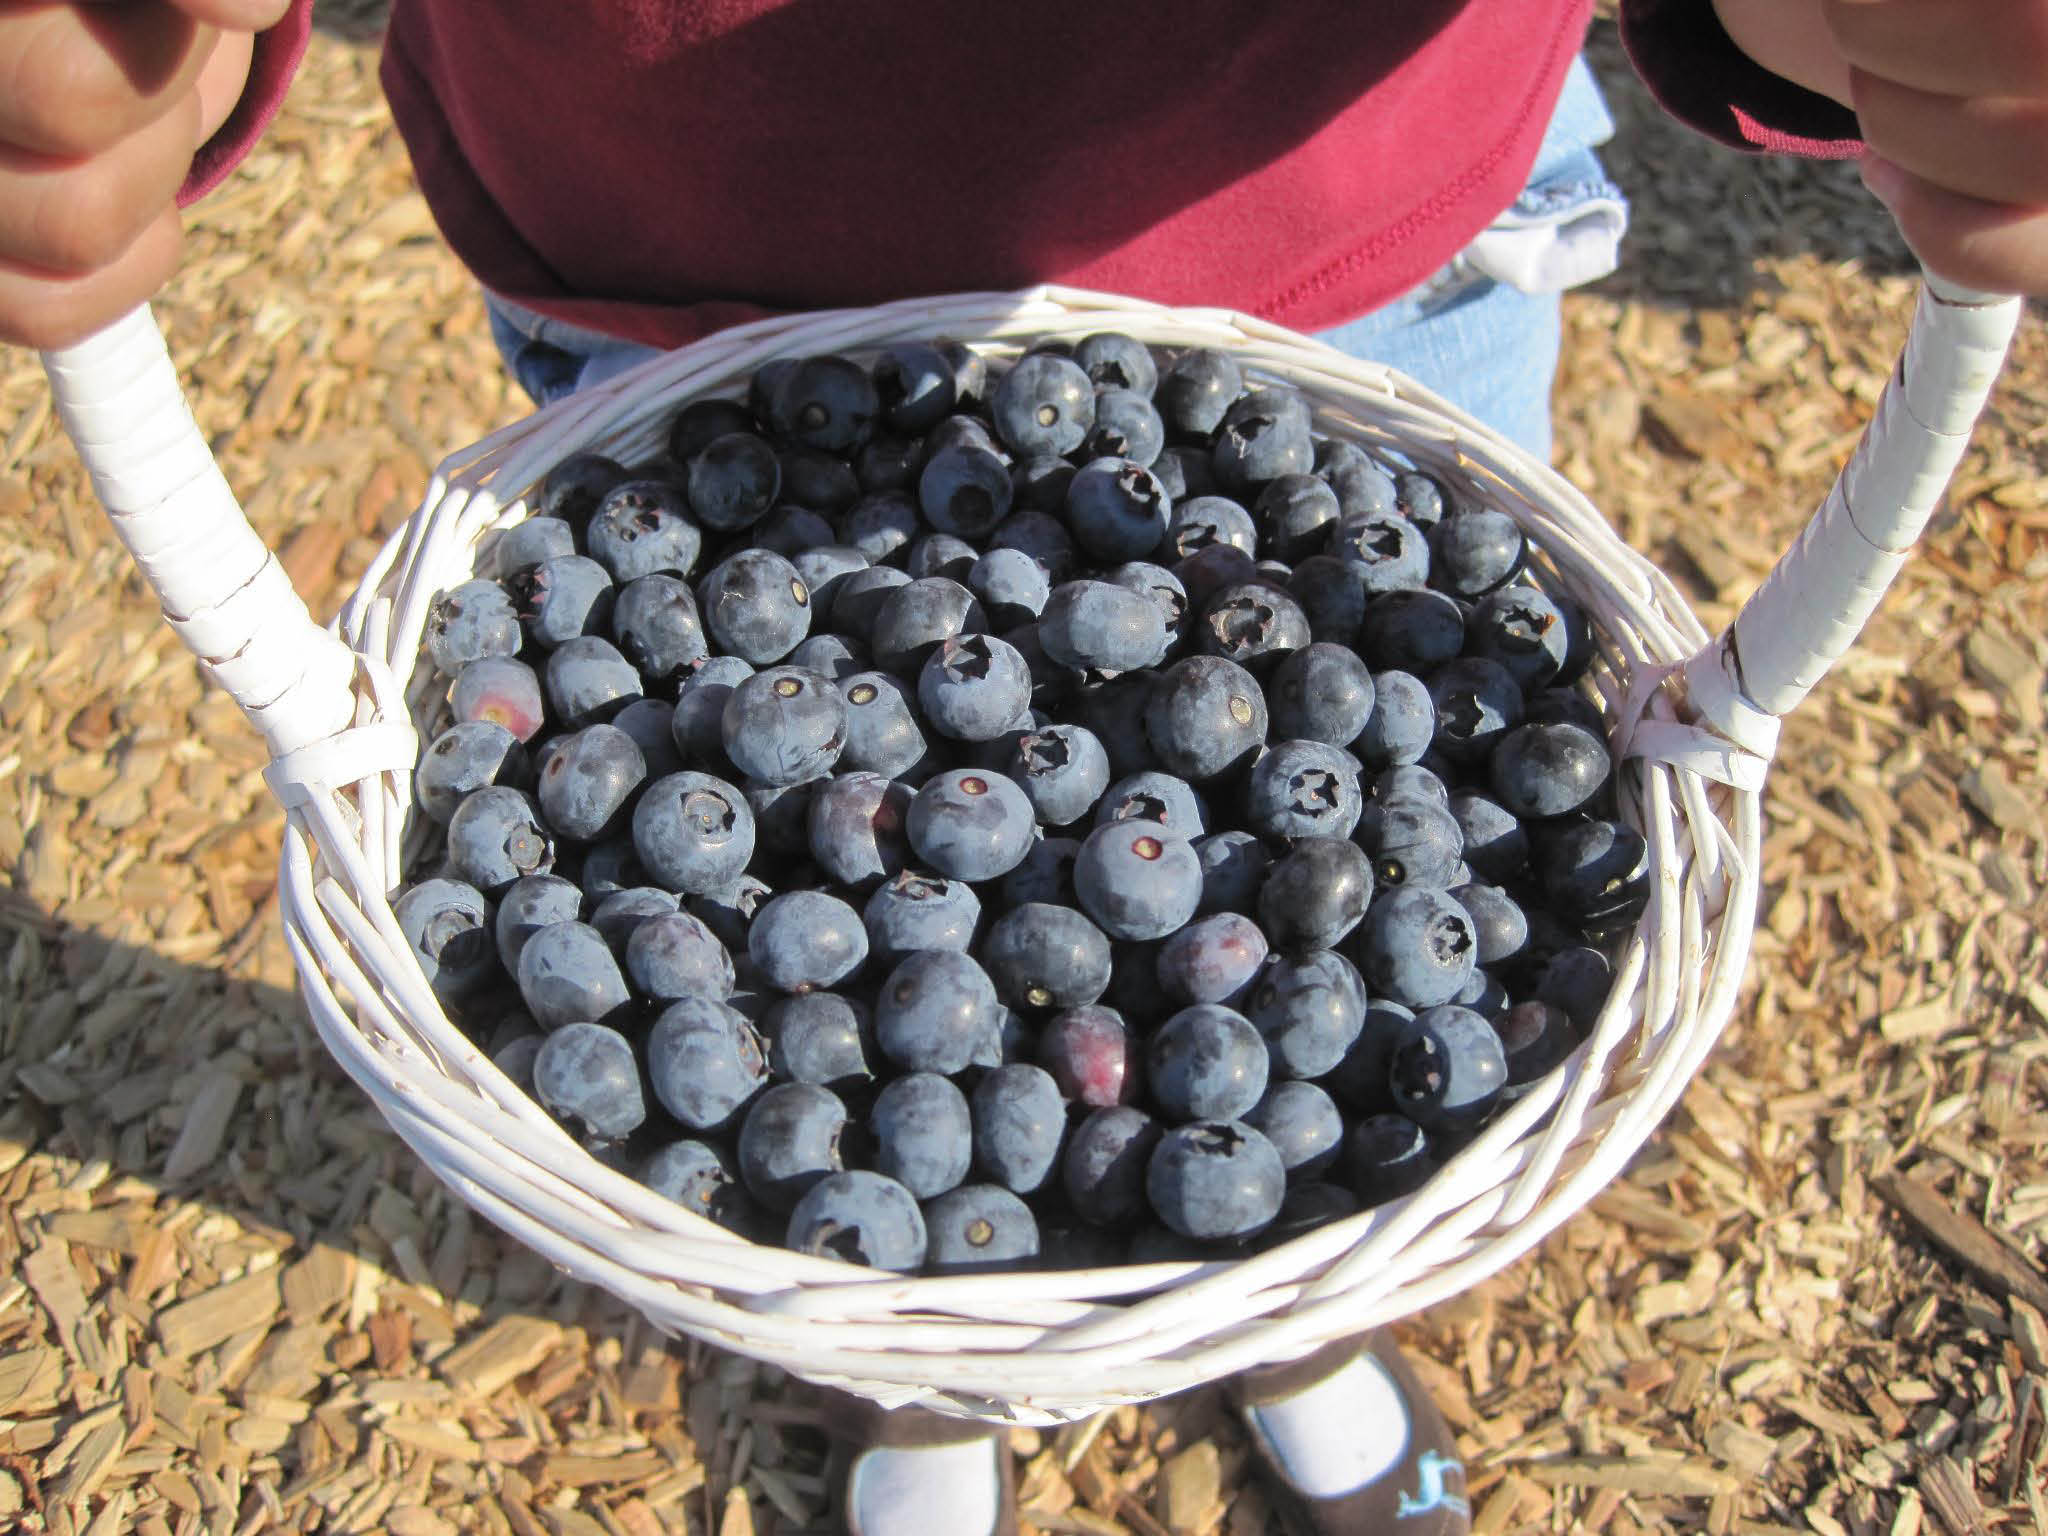 A basket full of delicious blueberries at Mountainview Blueberry Farm in Snohomish, Washington - u-pic blueberries